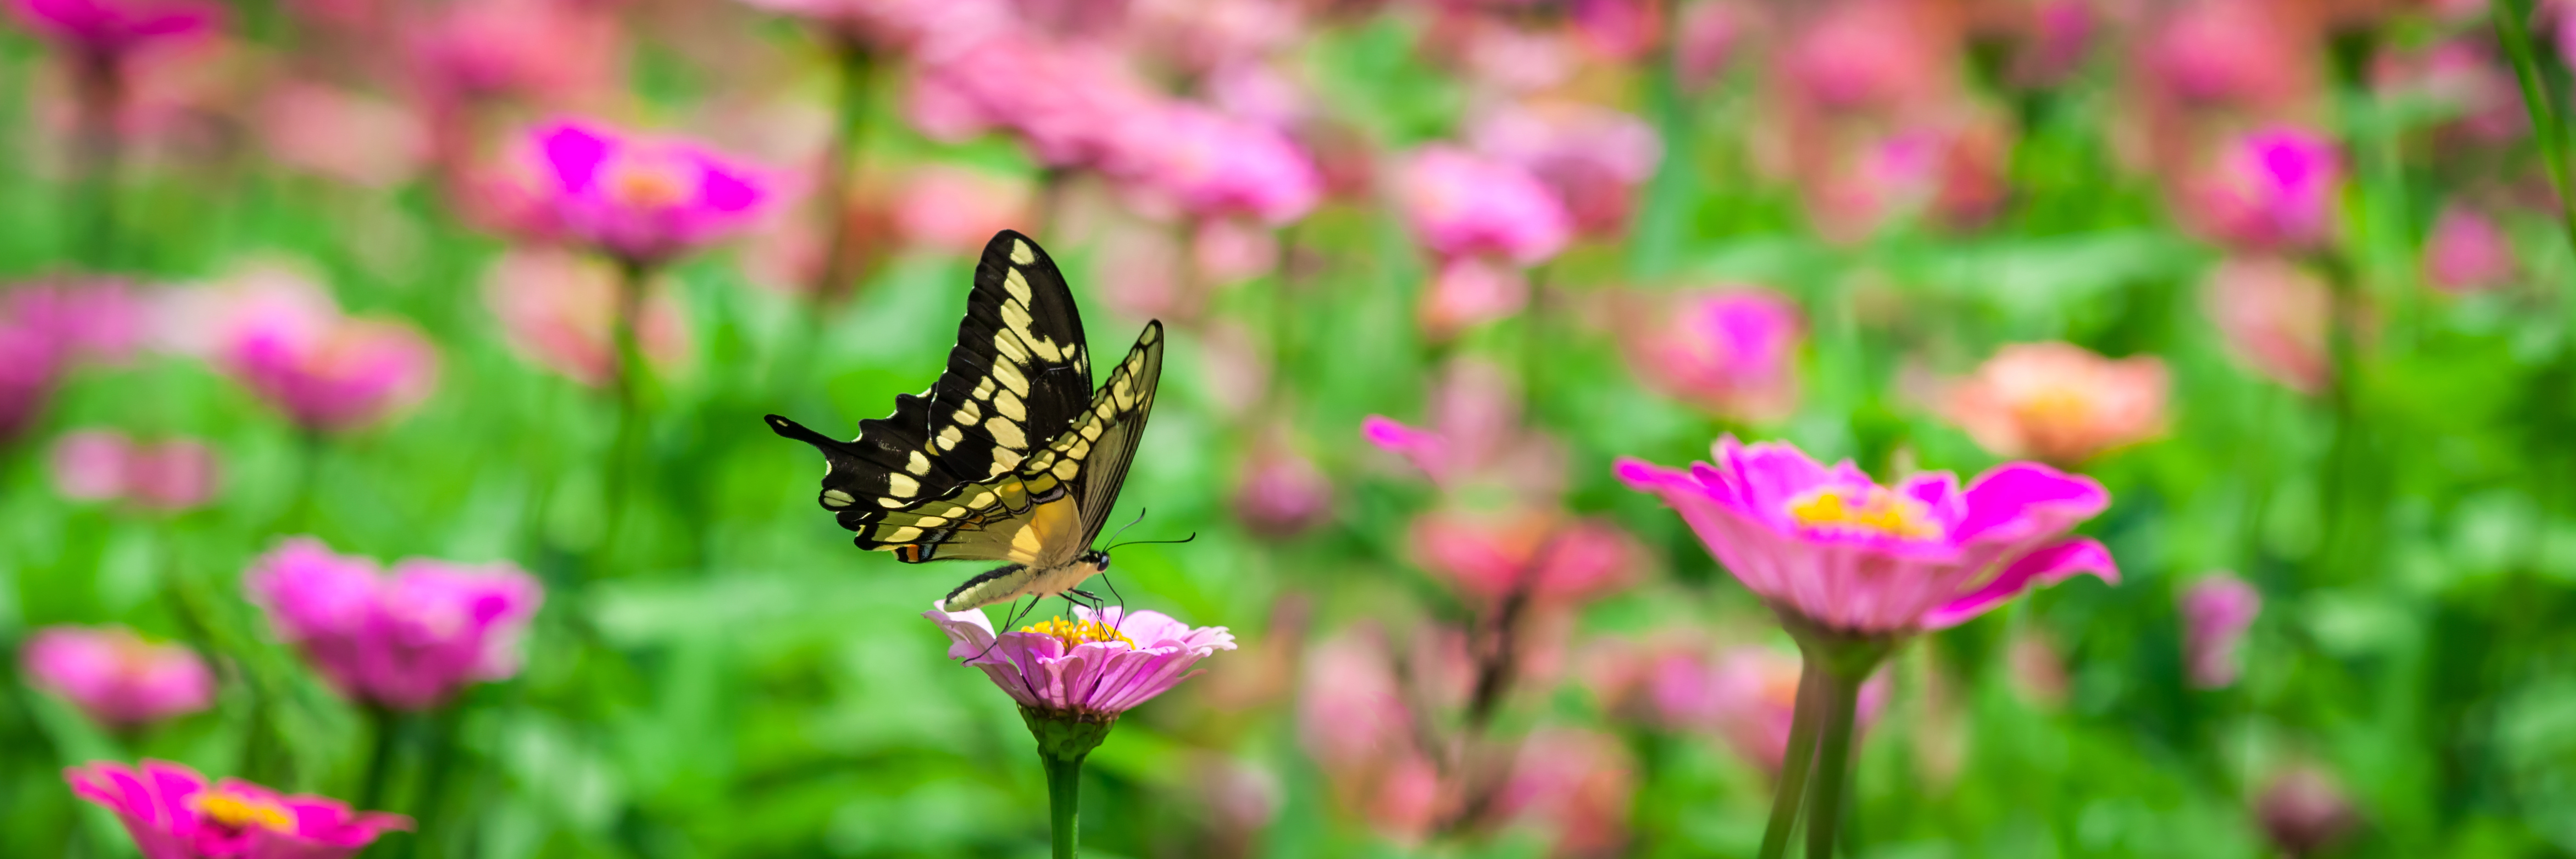 Ohio's Hospice Of Miami County Annual Butterly Release Slated For July 30